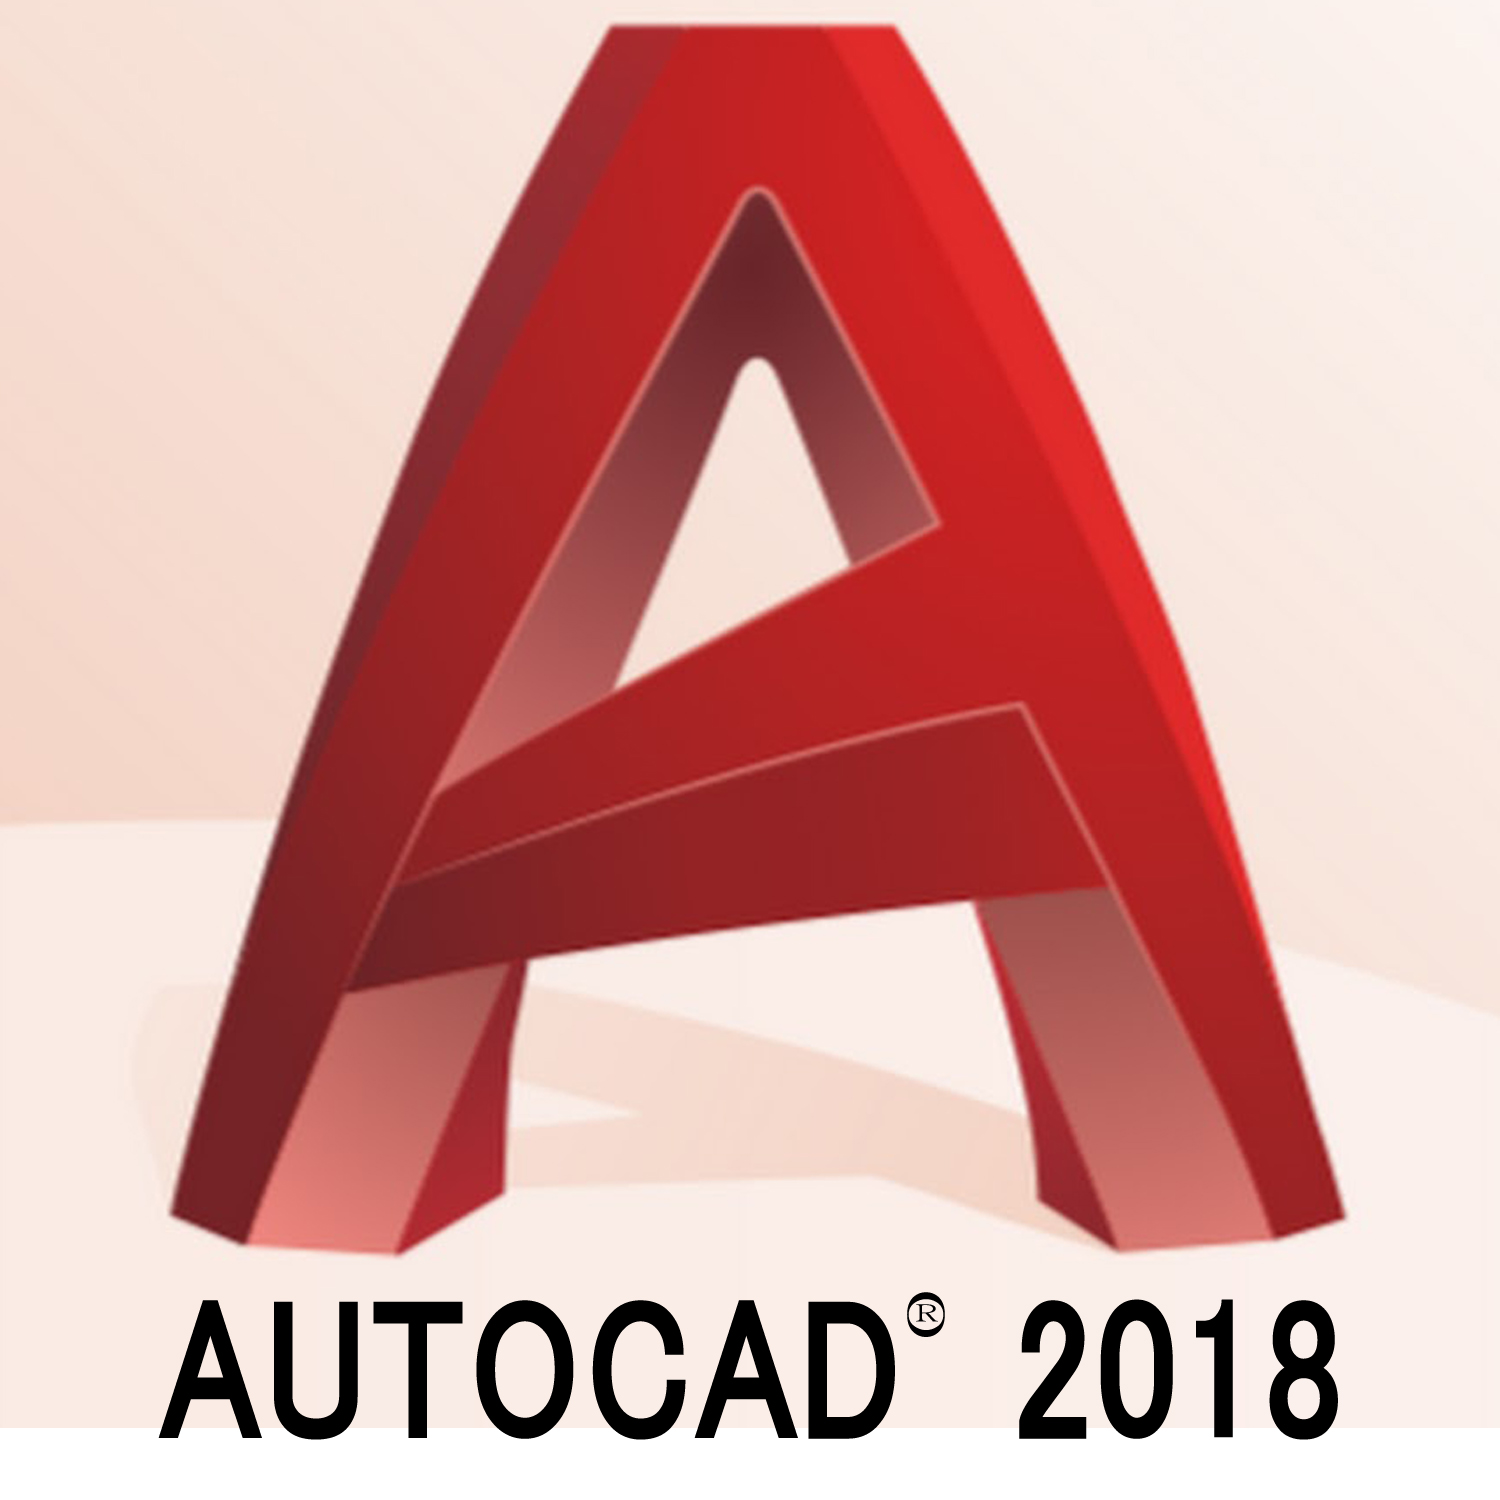 Download AutoCAD 2018 Free Full Latest version For PC